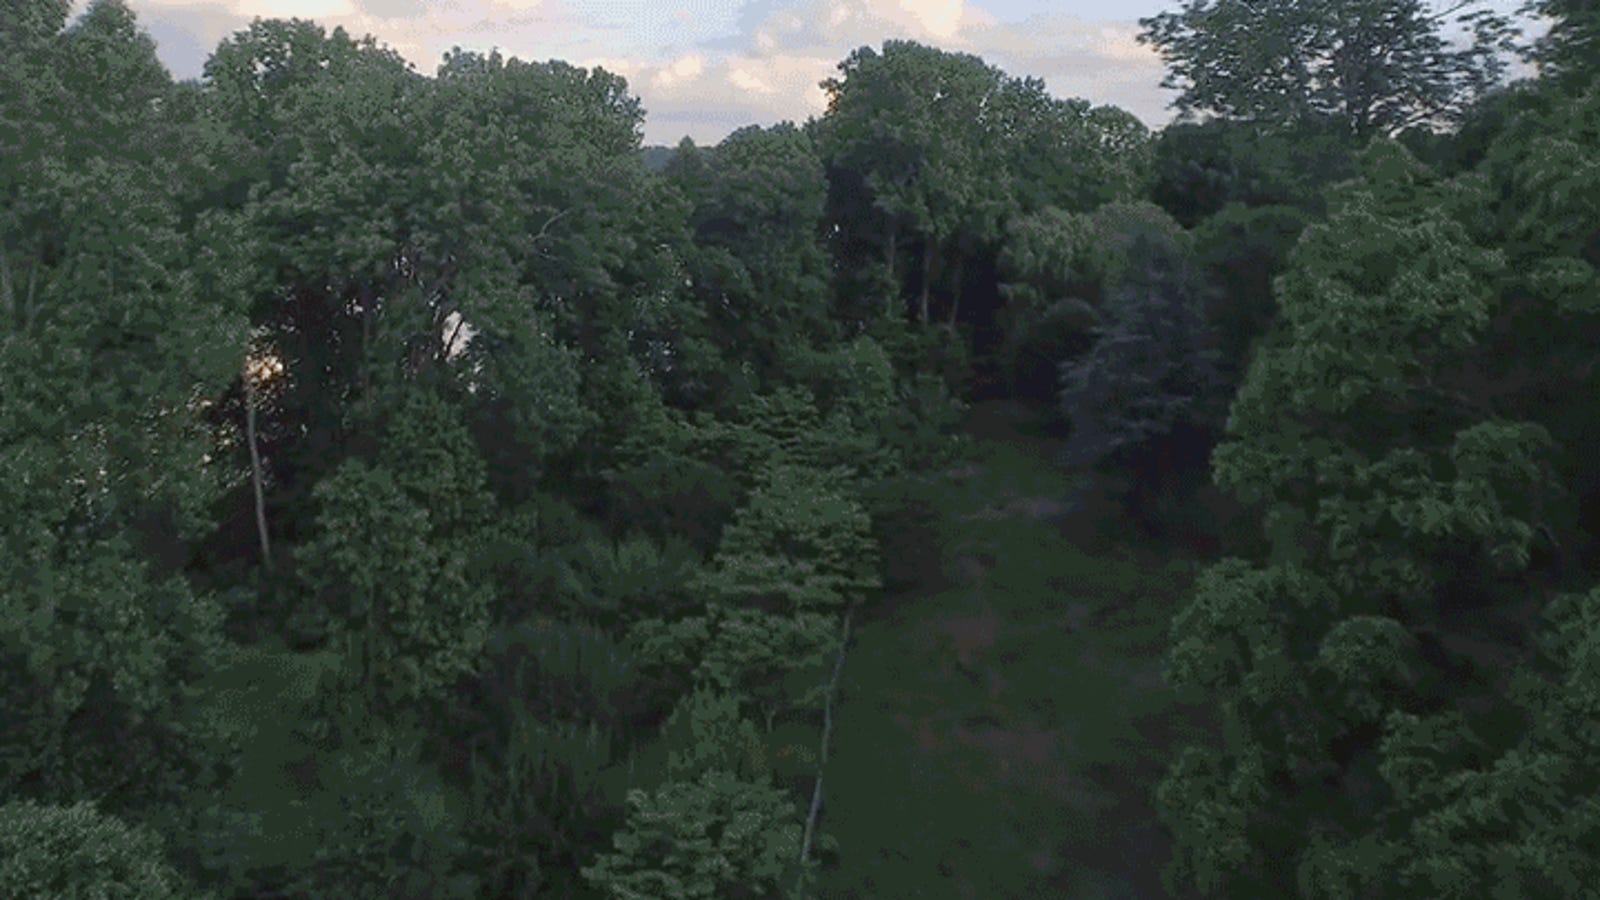 Fast-Forward Through Two Years of Stunning Seasonal Changes With This Drone Timelapse